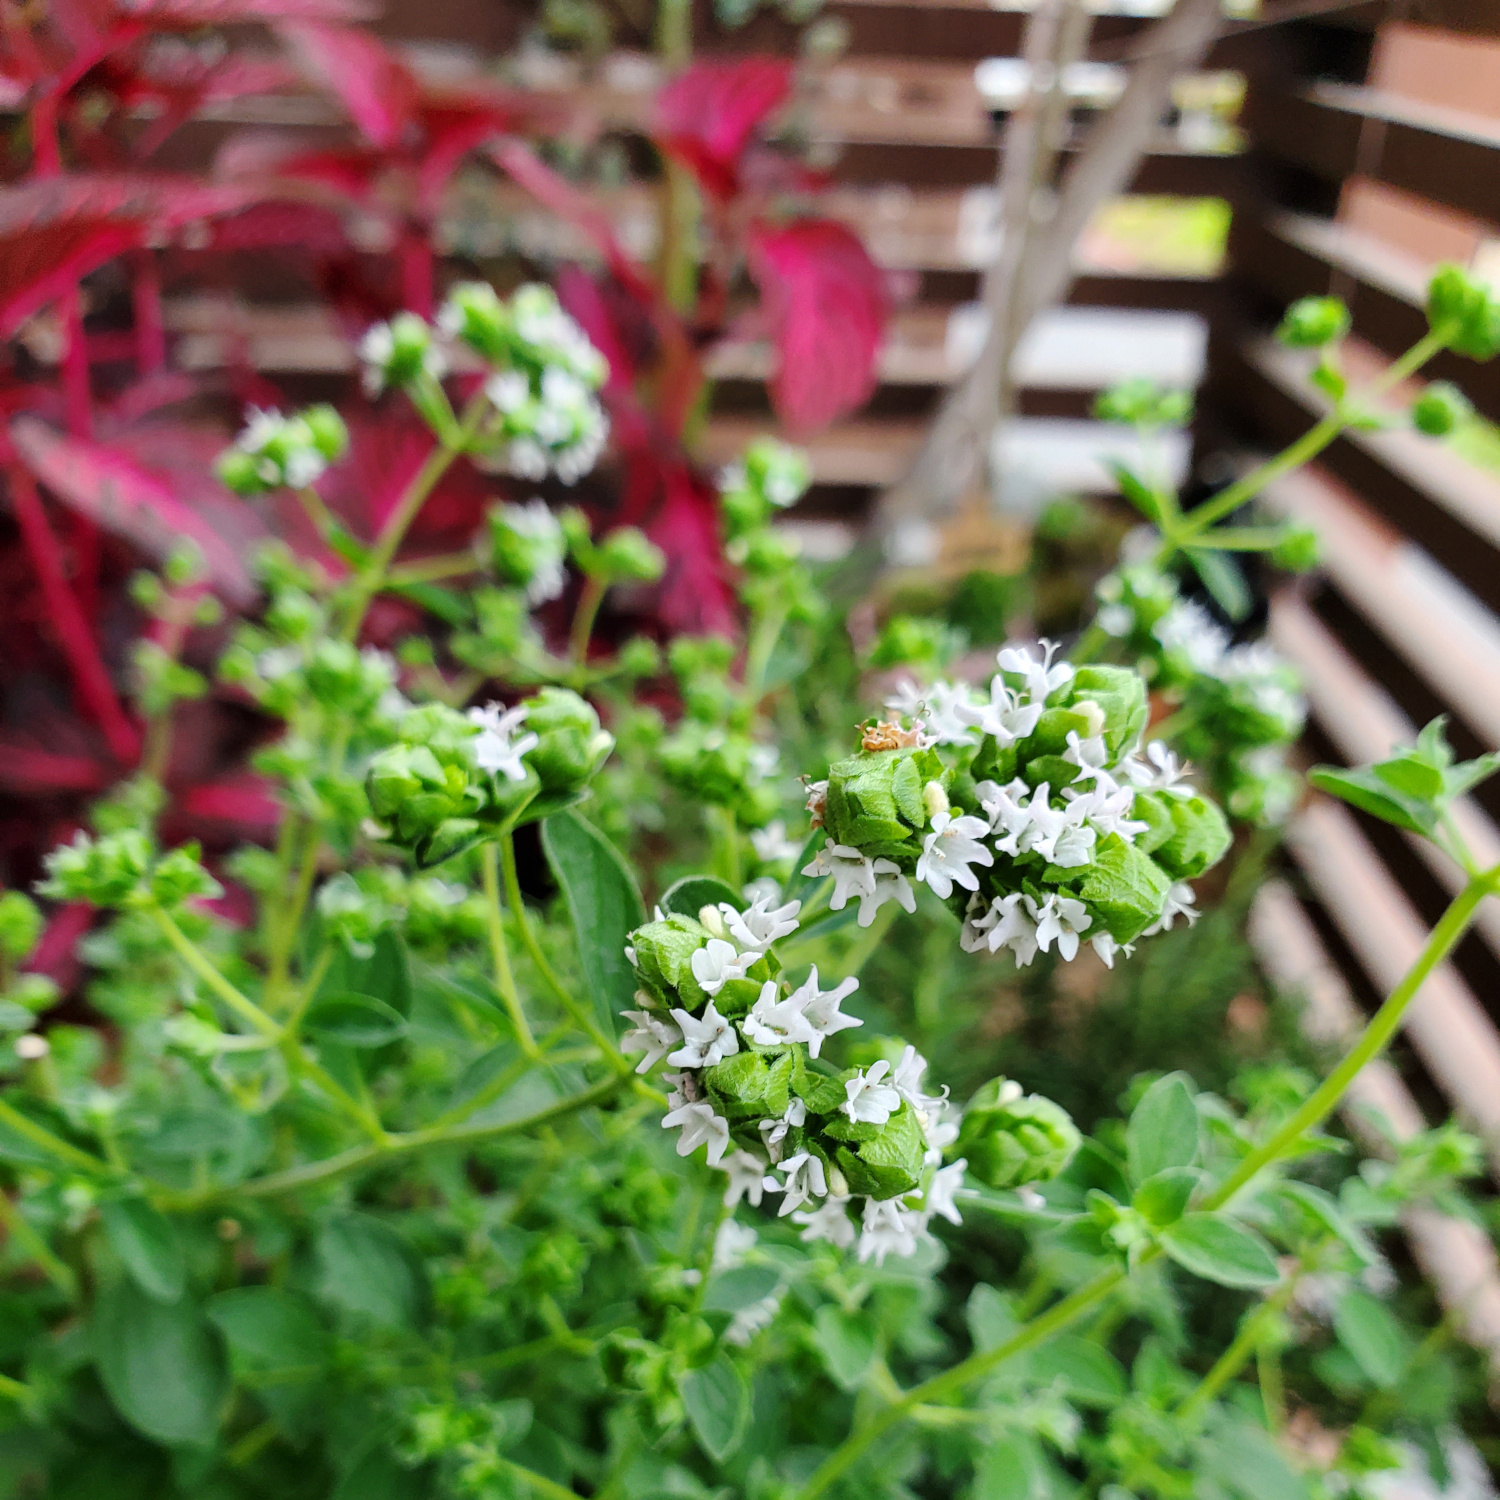 The thyme plant won't stop putting up tiny white flowers